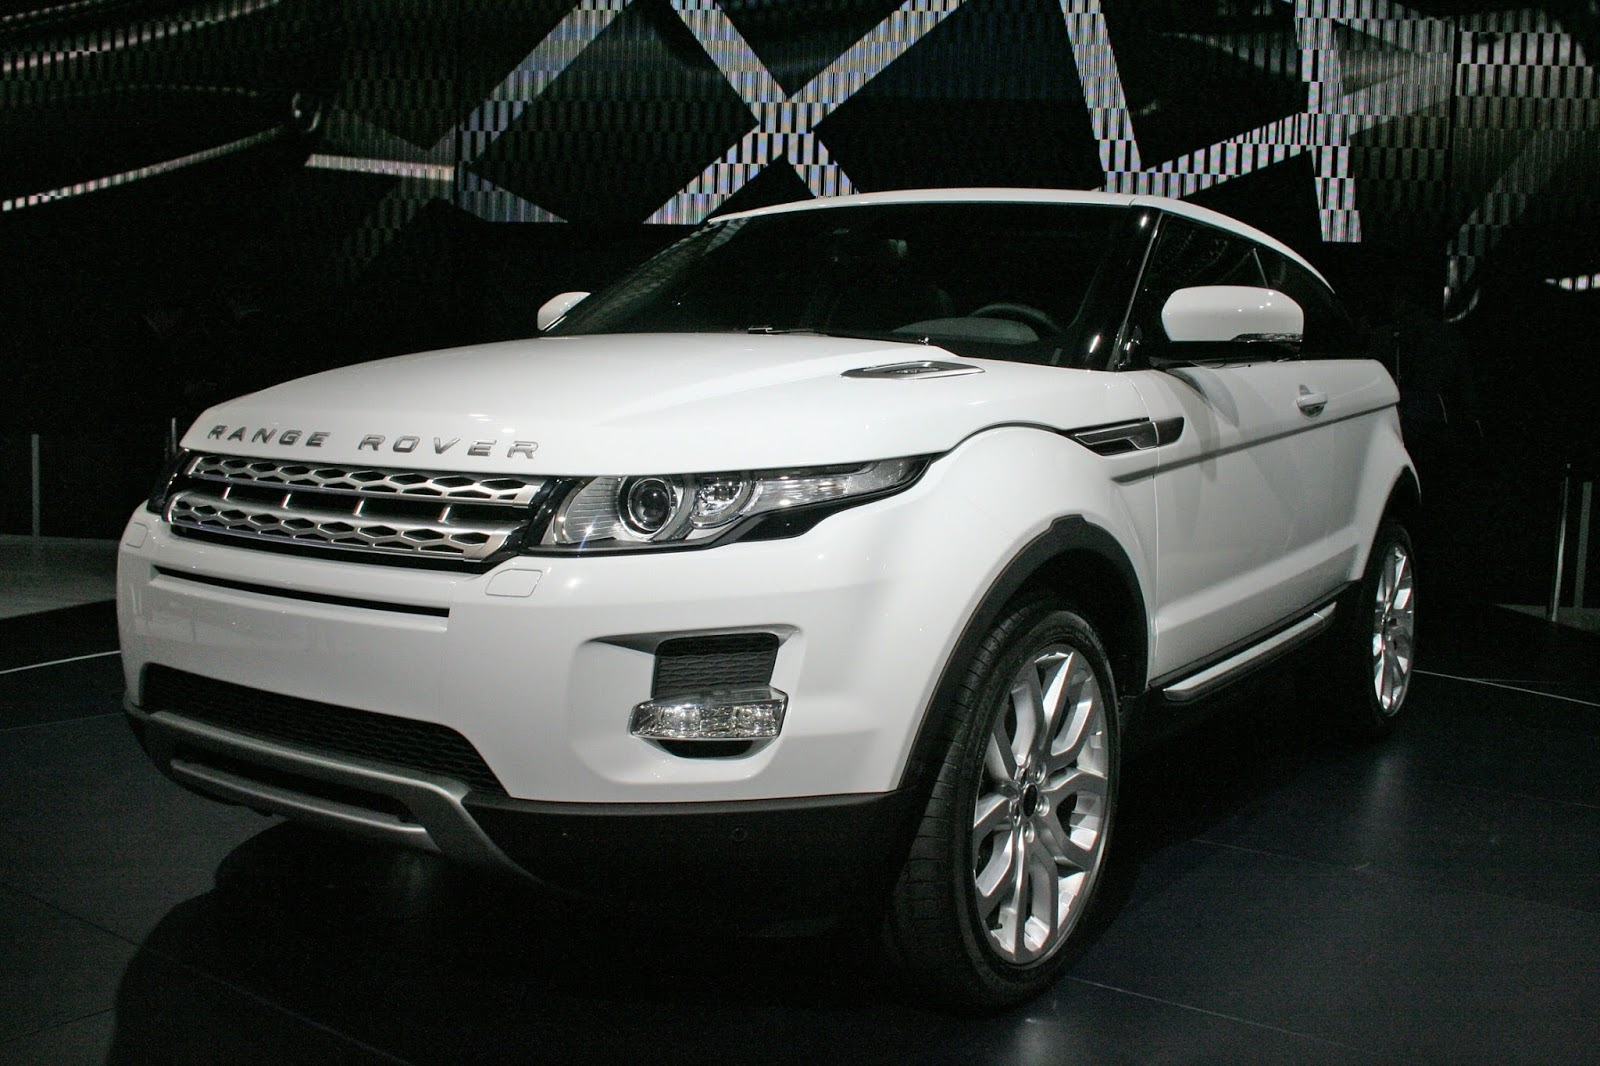 Land Rover Range Rover Evoque Spy Photos Wallpaper Specification